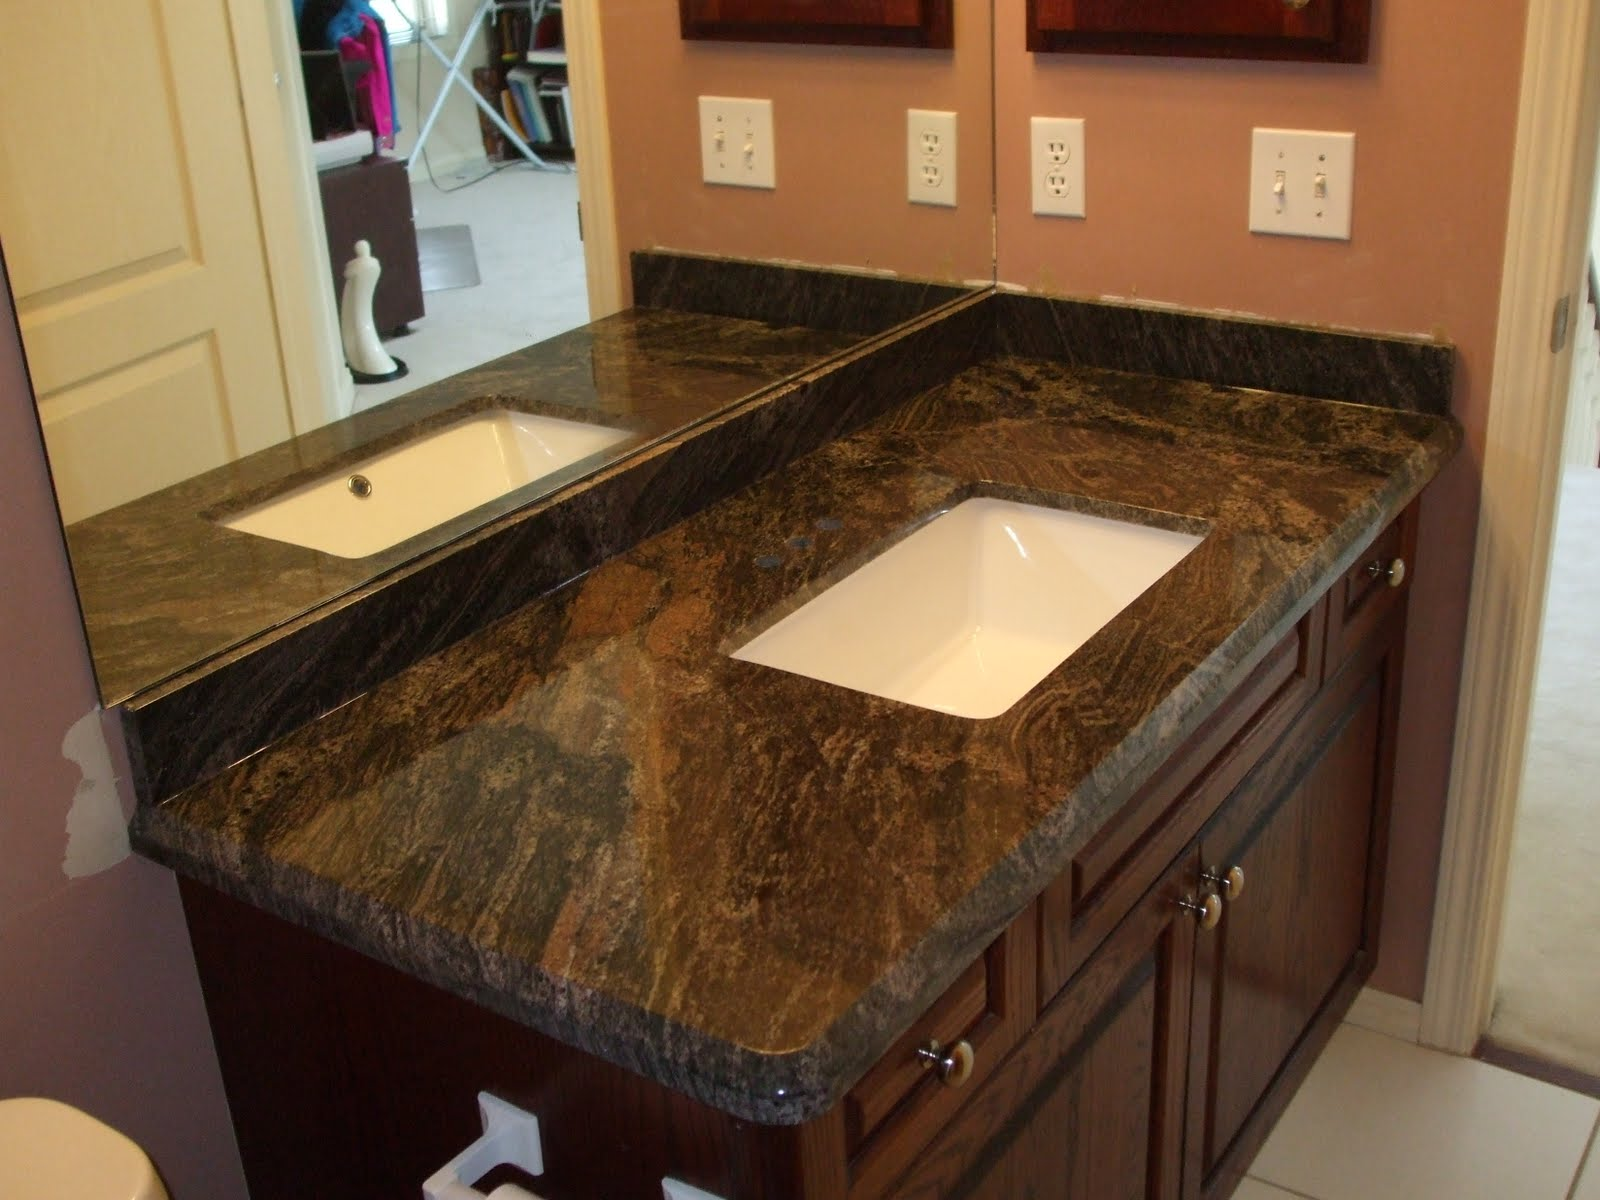 Granite Tops For Kitchen : Granite Countertops 1024x768 Juparana Lapidus Granite Countertops 3587 ...